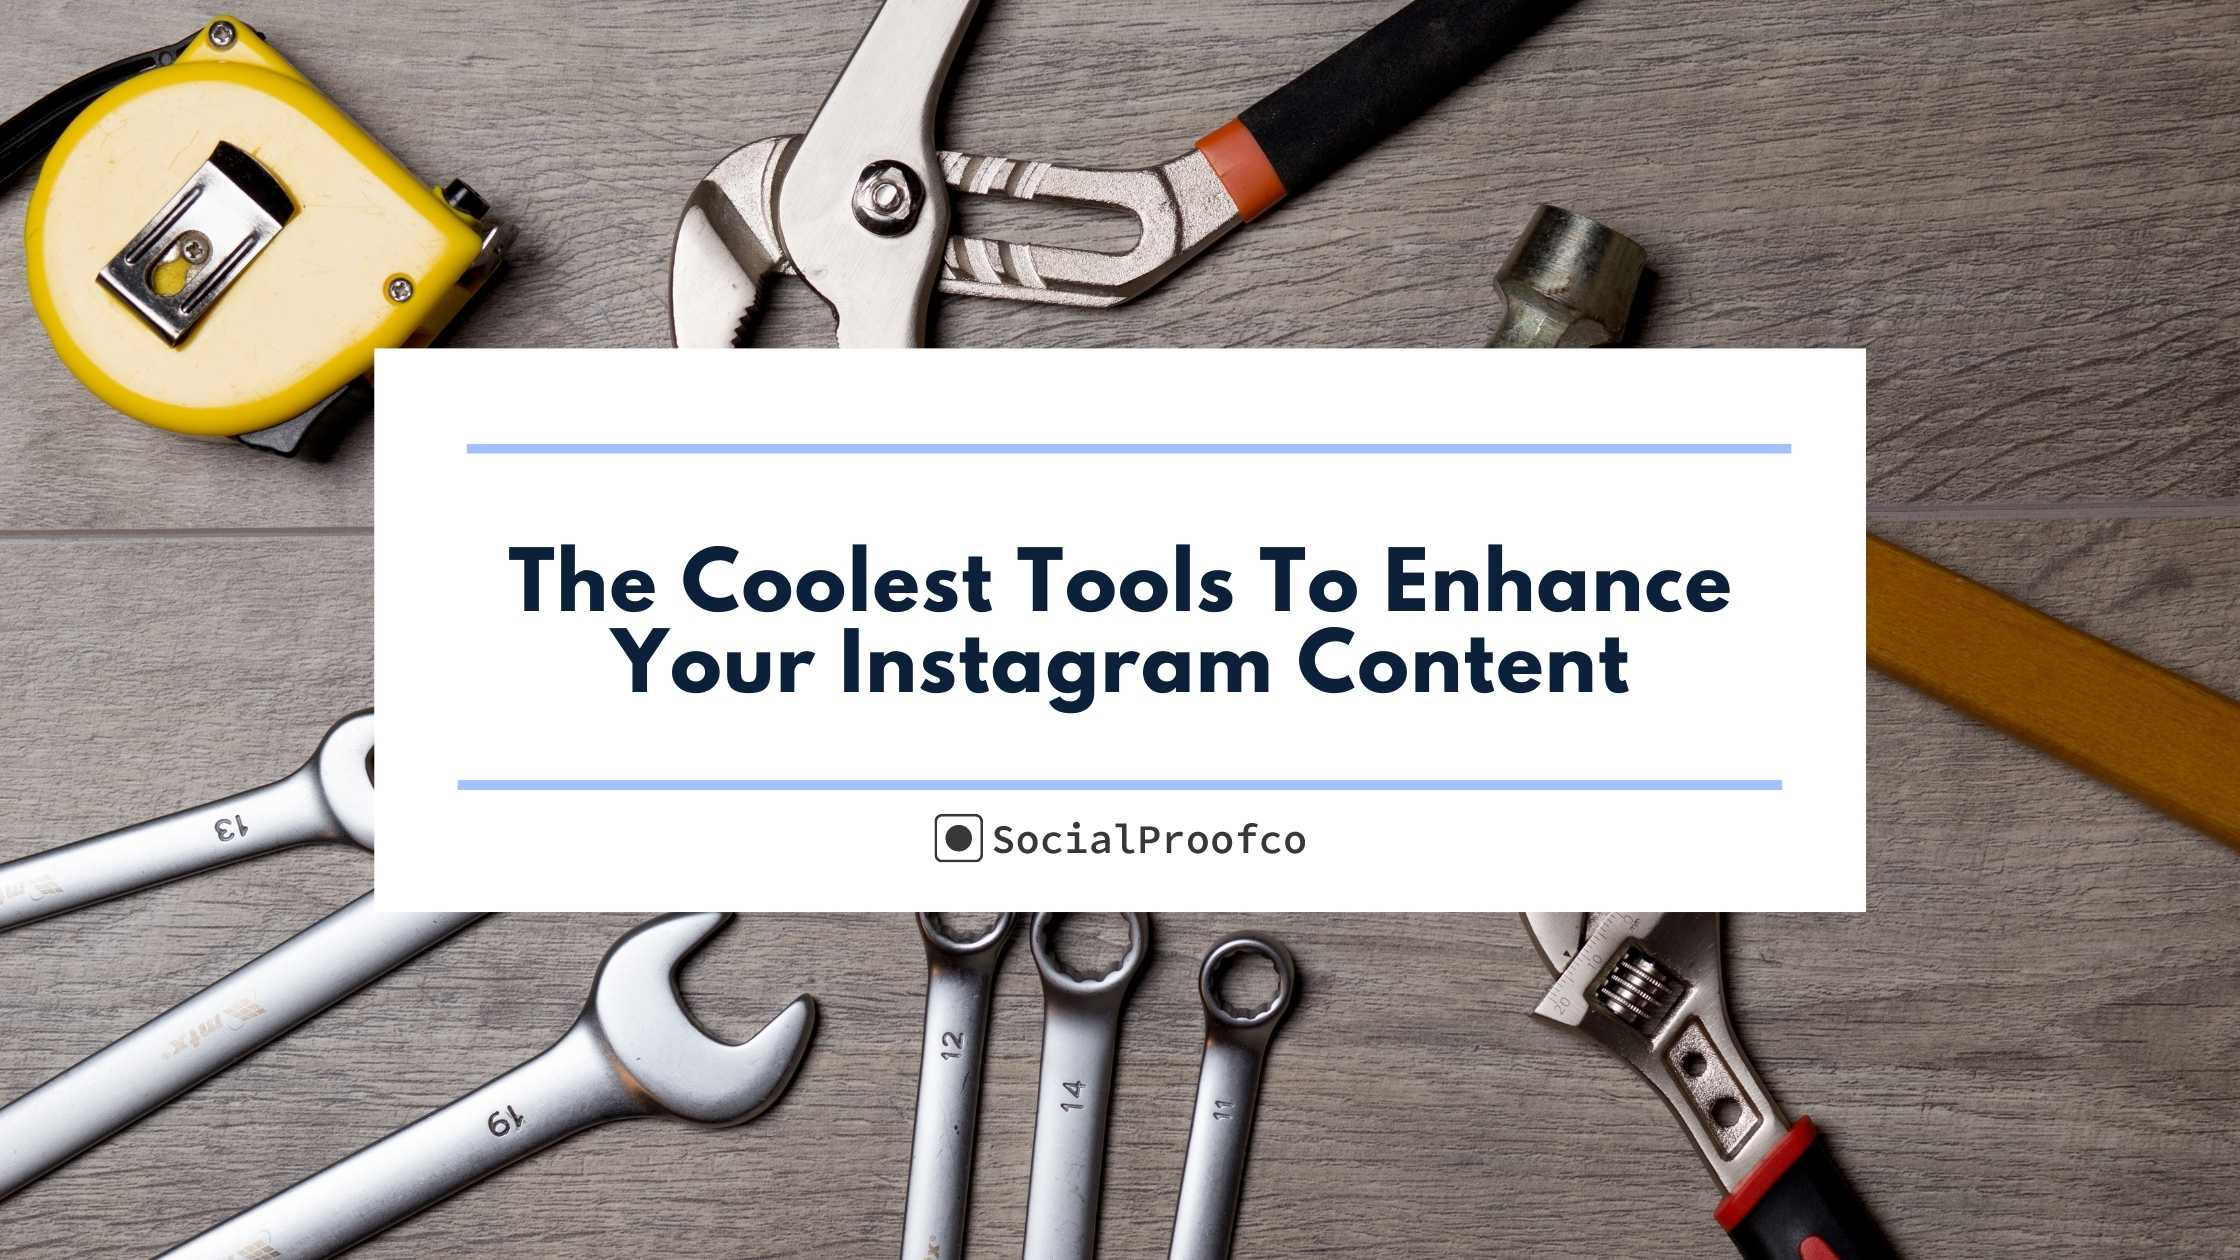 The Coolest Tools To Enhance Your Instagram Content